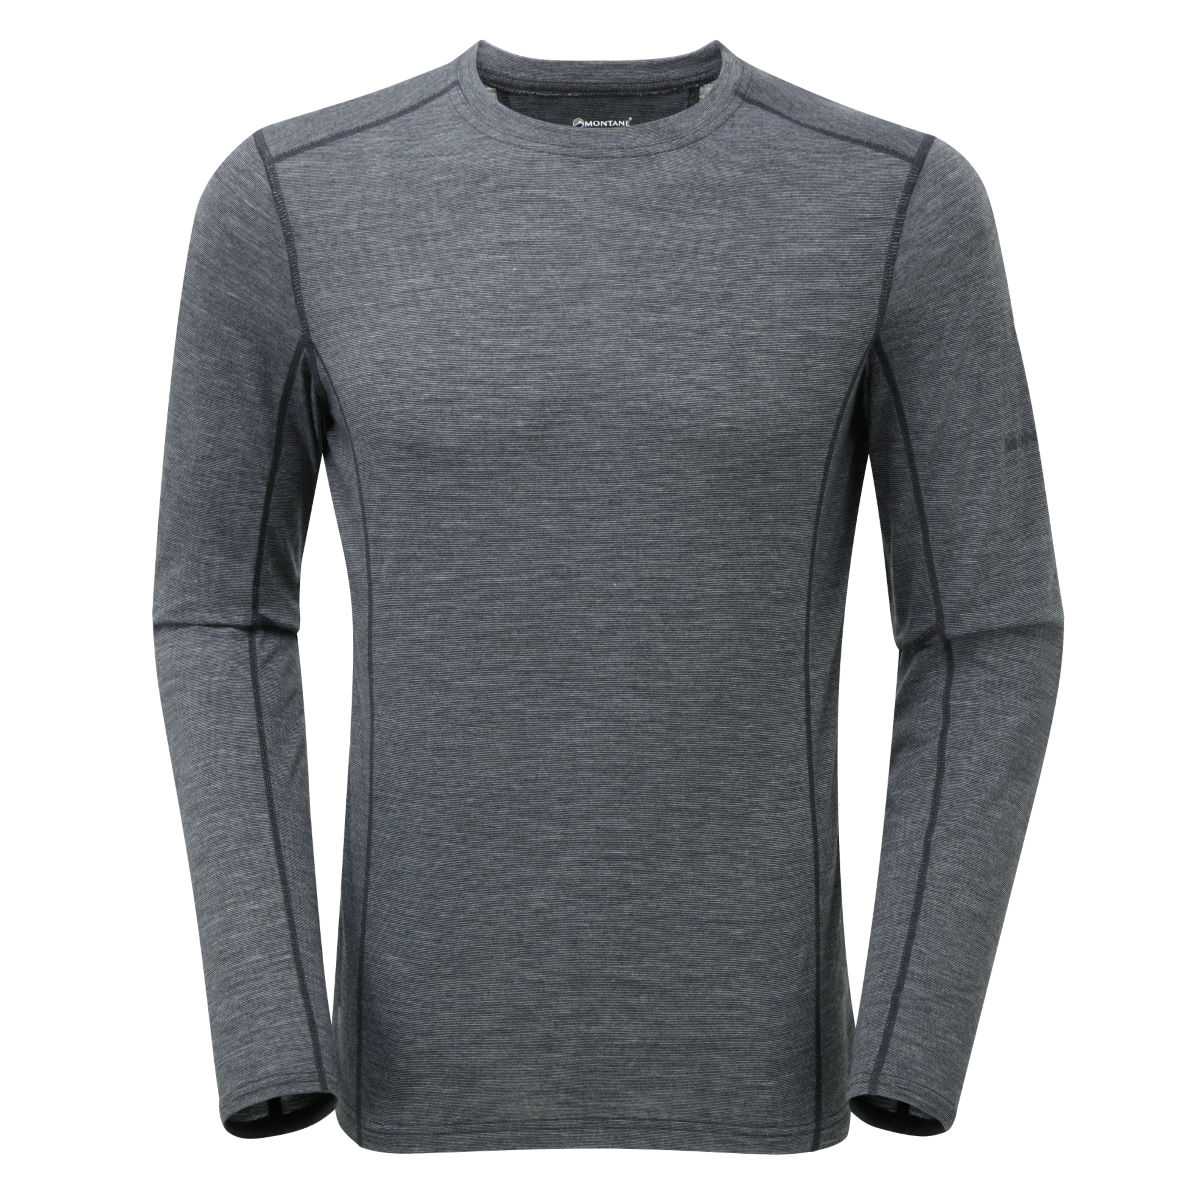 Montane - Primino 140g Long Sleeve T-Shirt - XL Noir